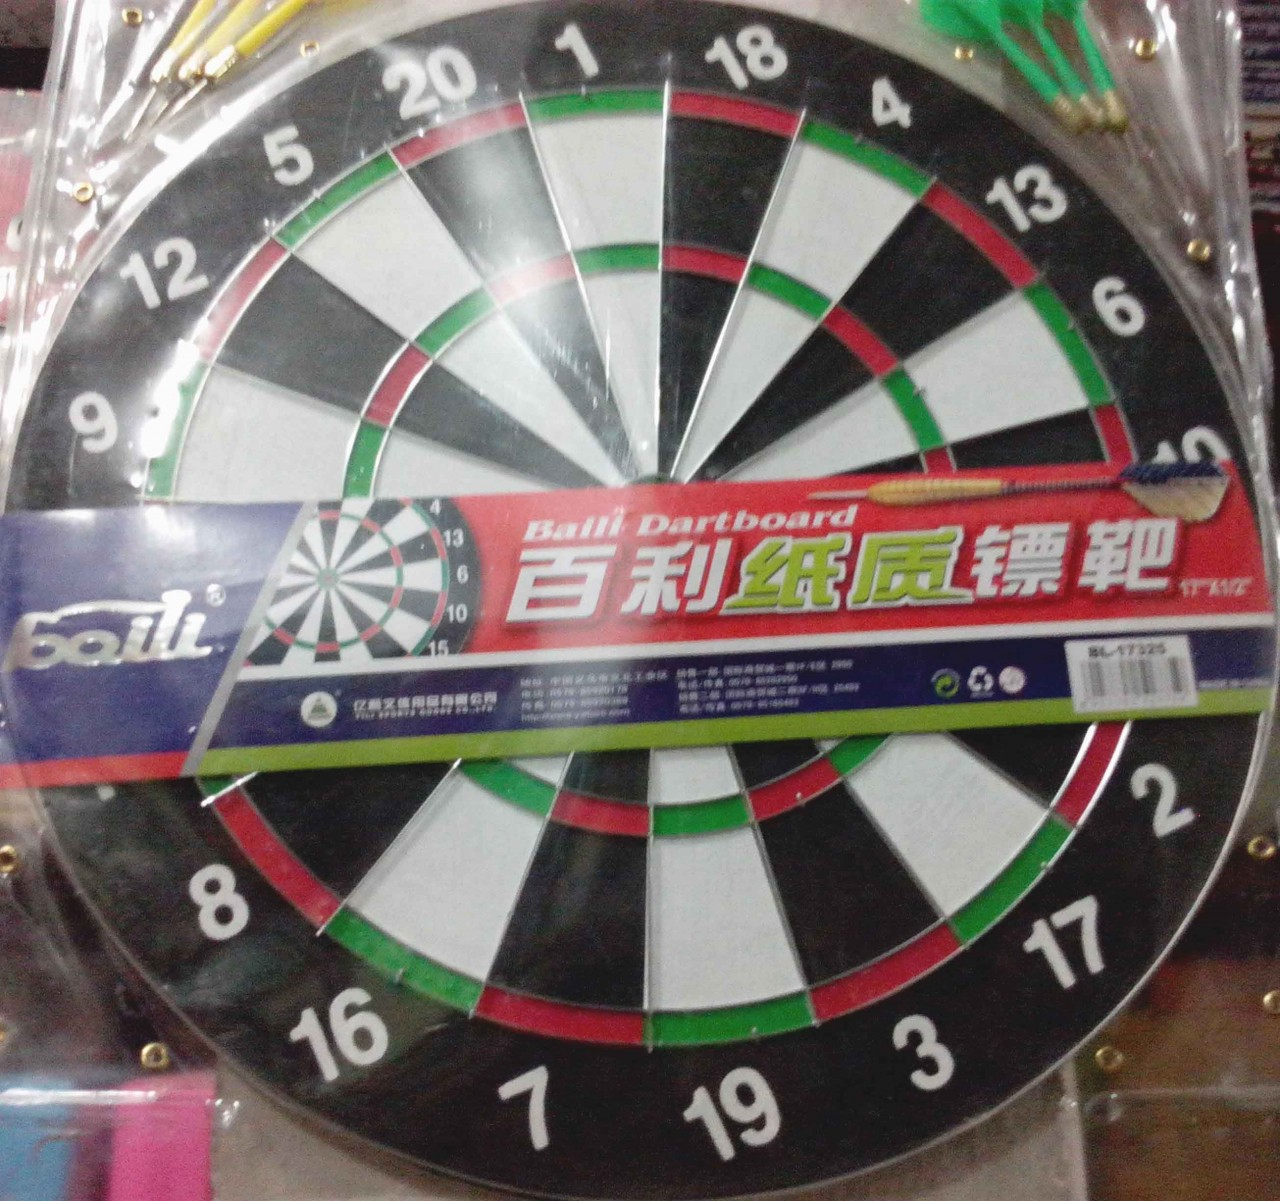 Baili 17 Large Hard Board Dart Game For Kids Tr12092018 Home